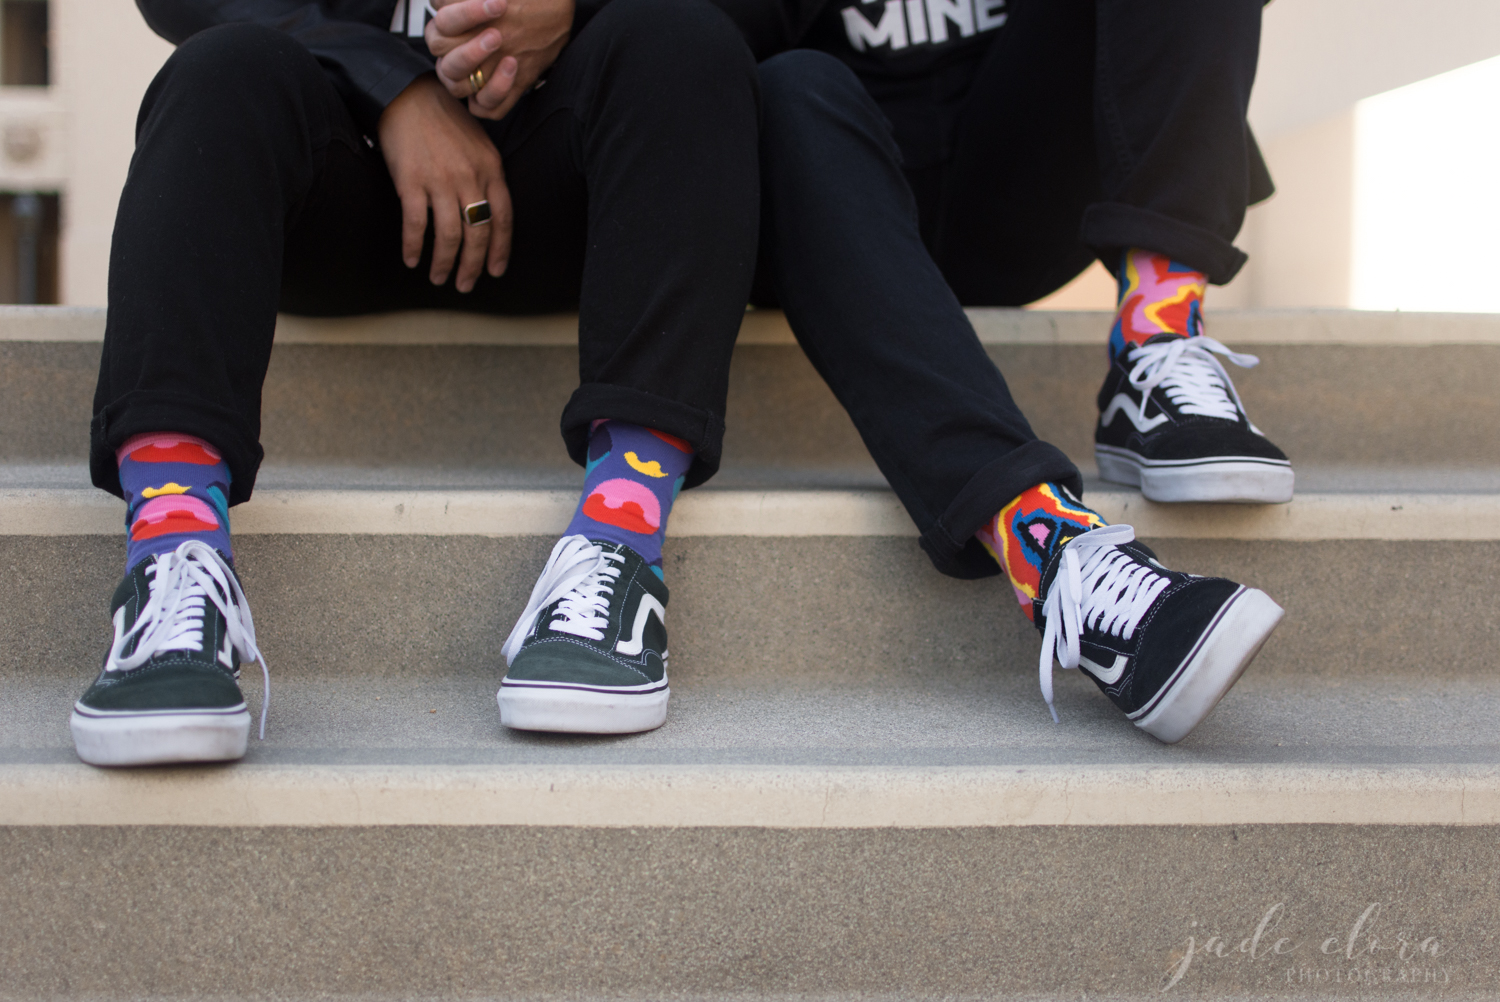 Close Up on Gay Couple's Matching Shoes and Socks